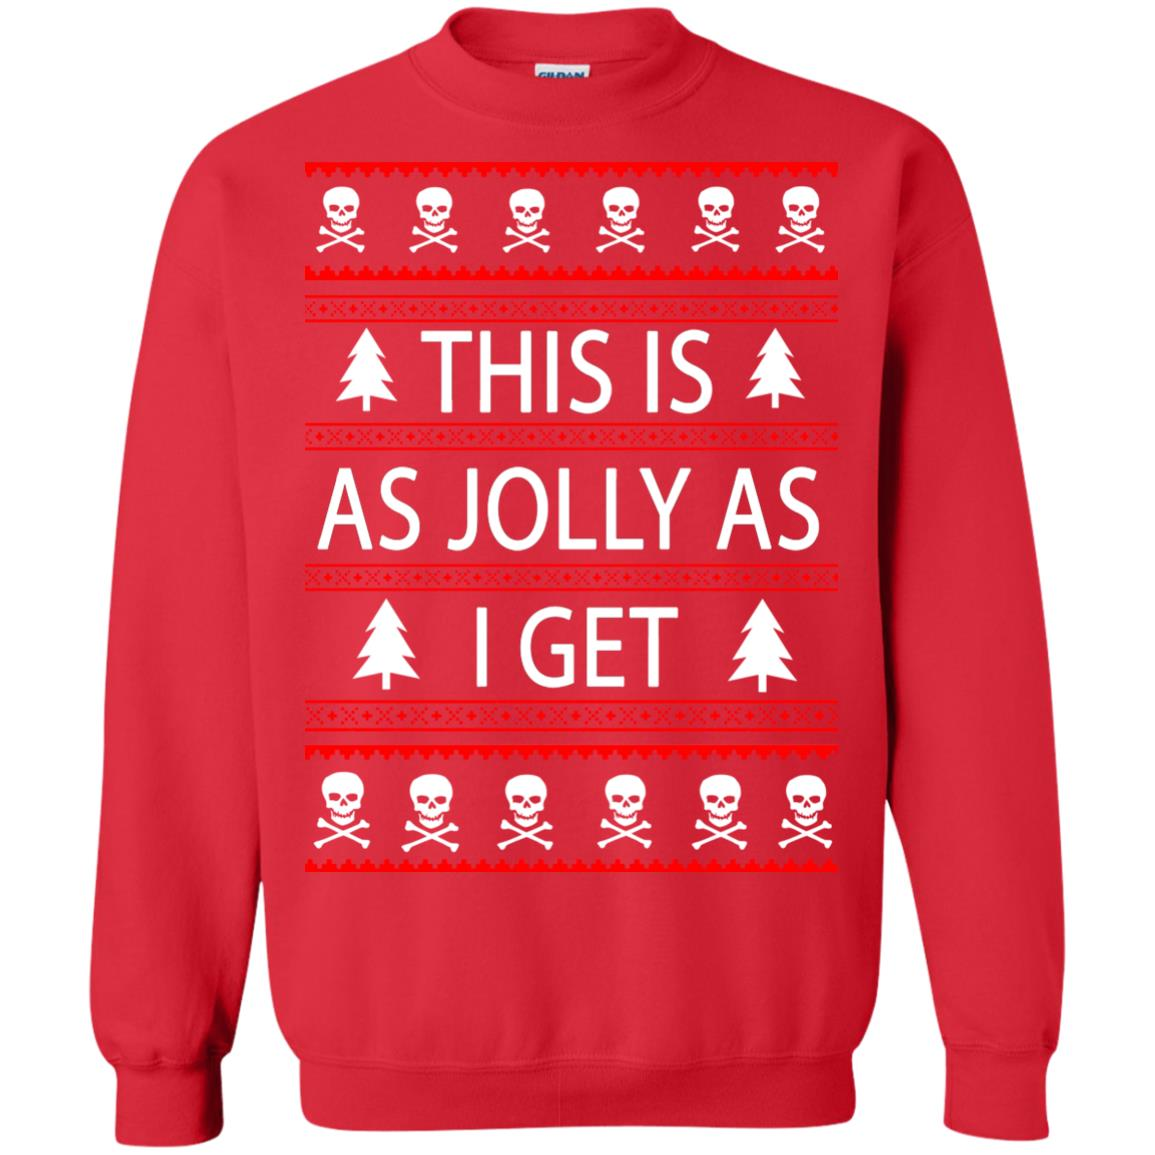 image 3167 - This Is as Jolly as I Get Emo Gothic Christmas Sweatshirts, Hoodie